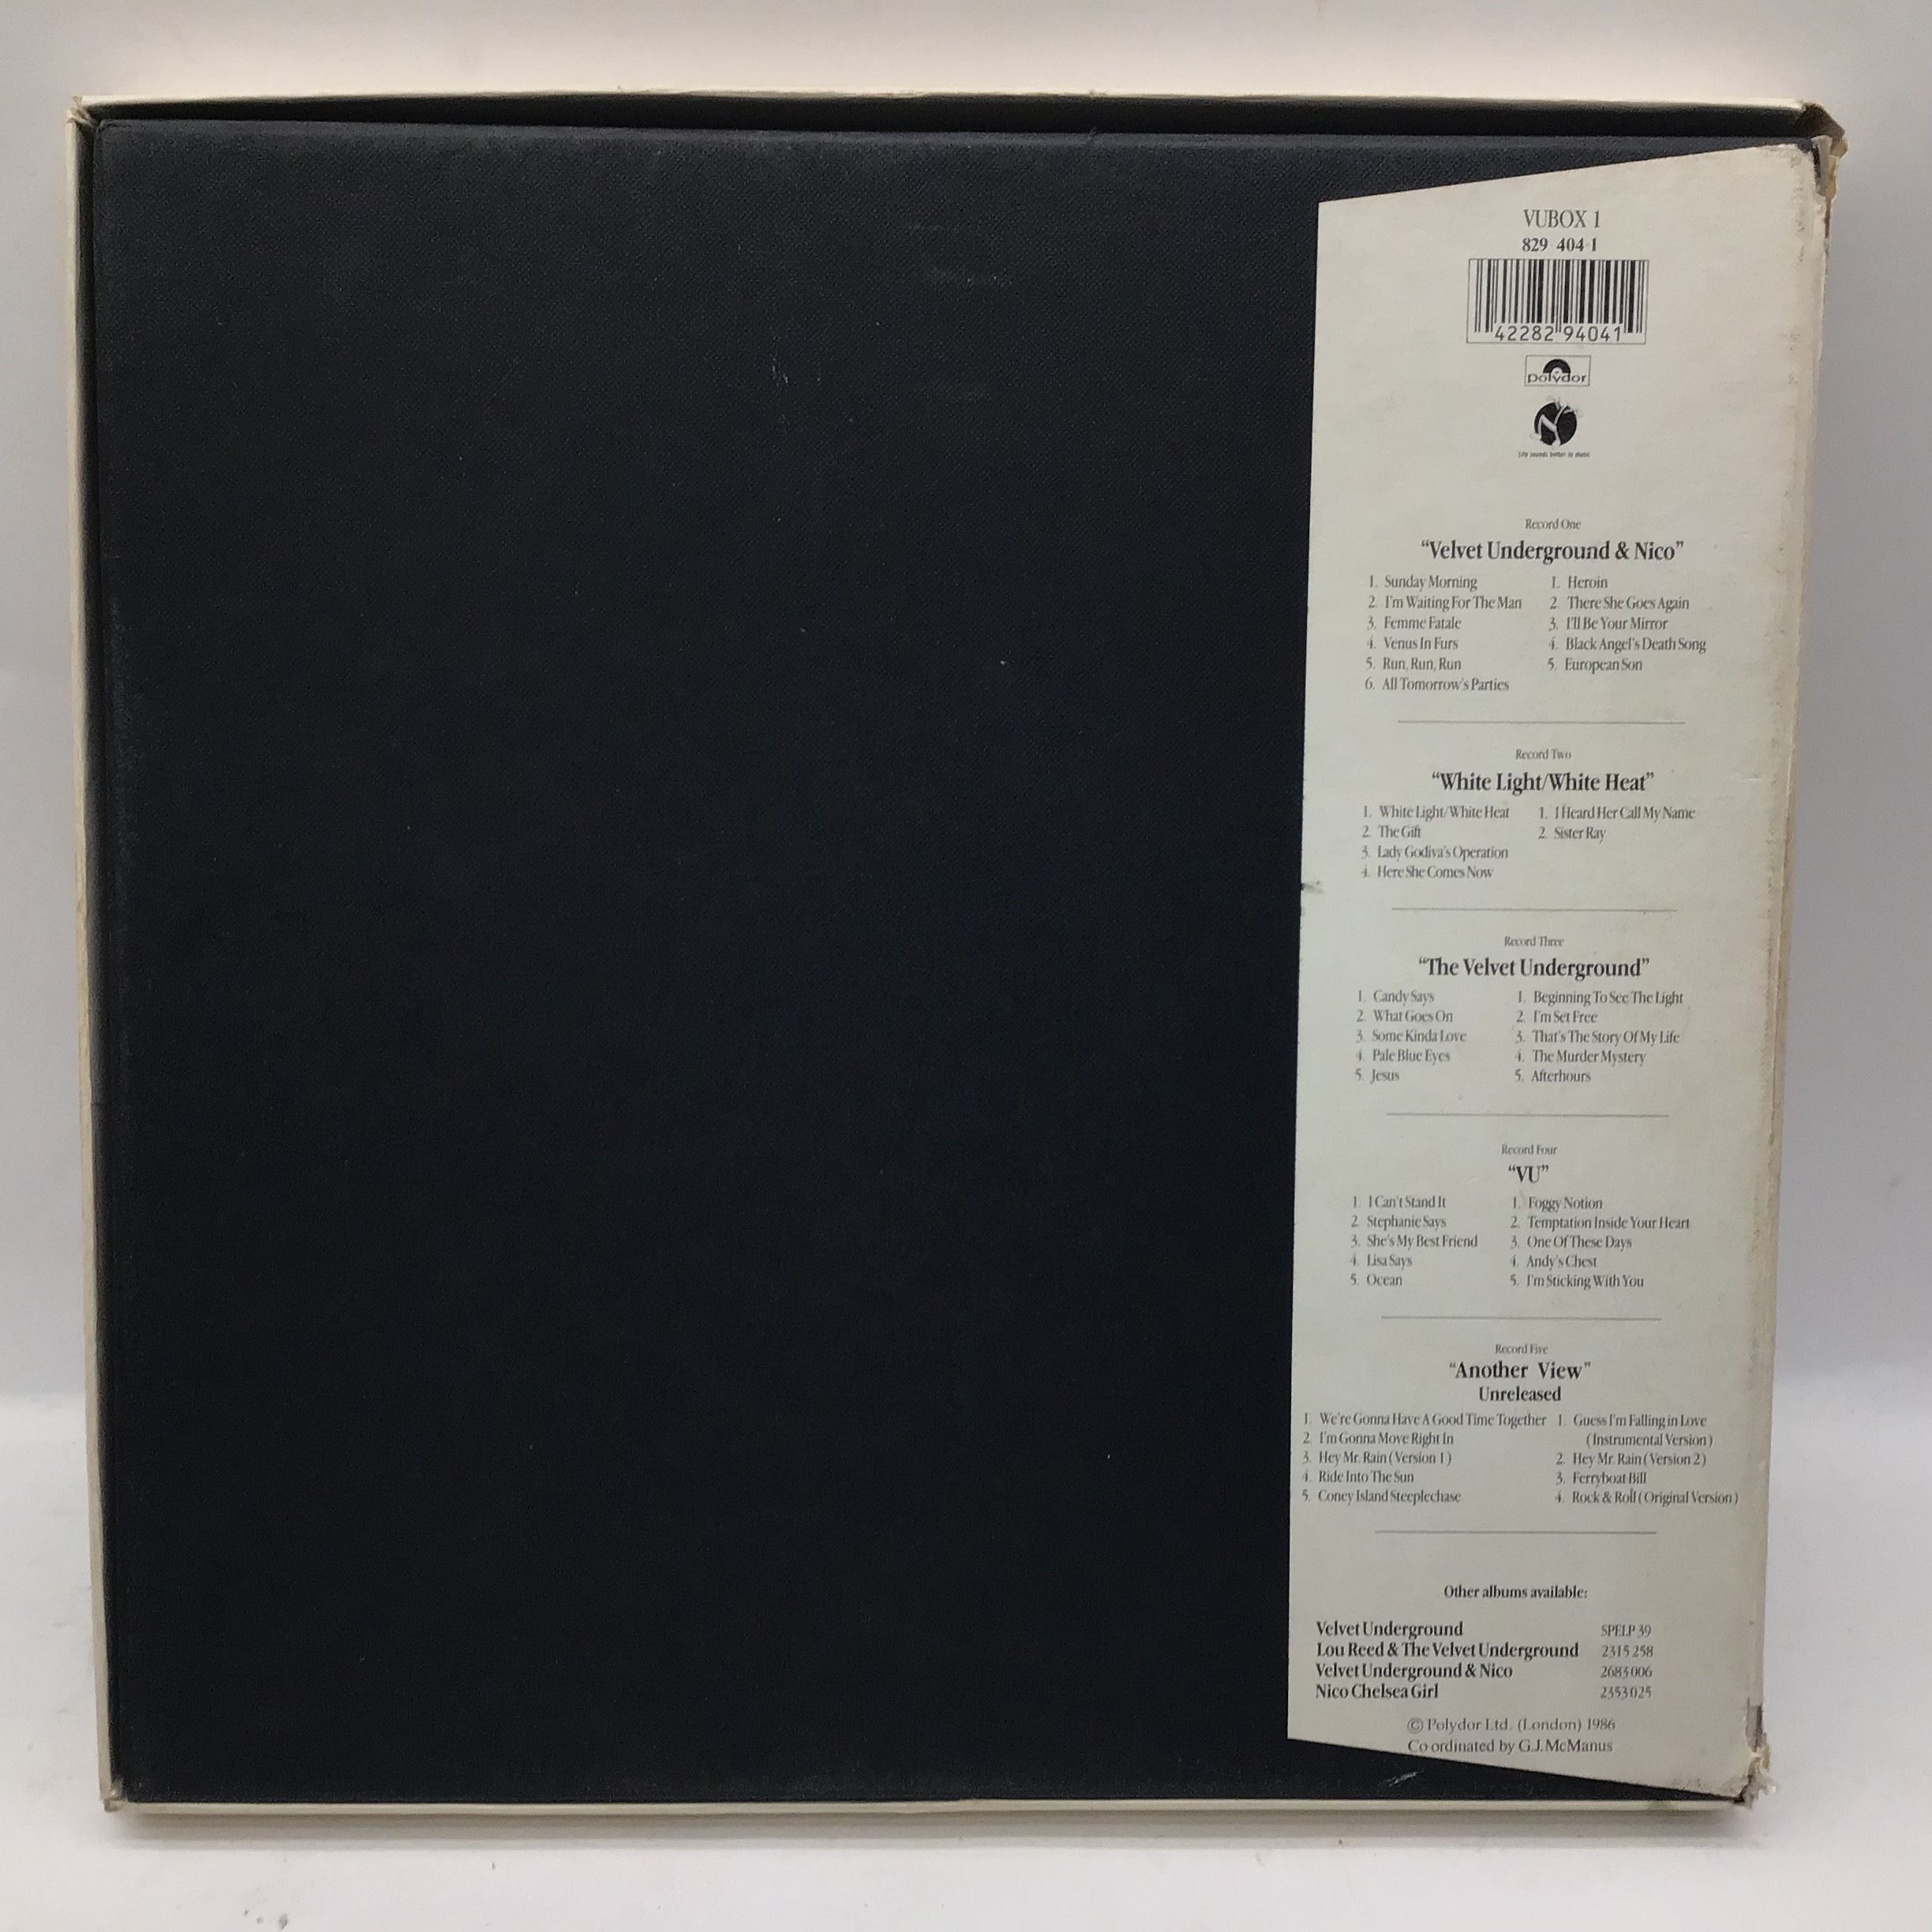 The Velvet Underground Vinyl 5 LP Box Set from 1986 complete with booklet and info sheet. Found here - Image 2 of 7